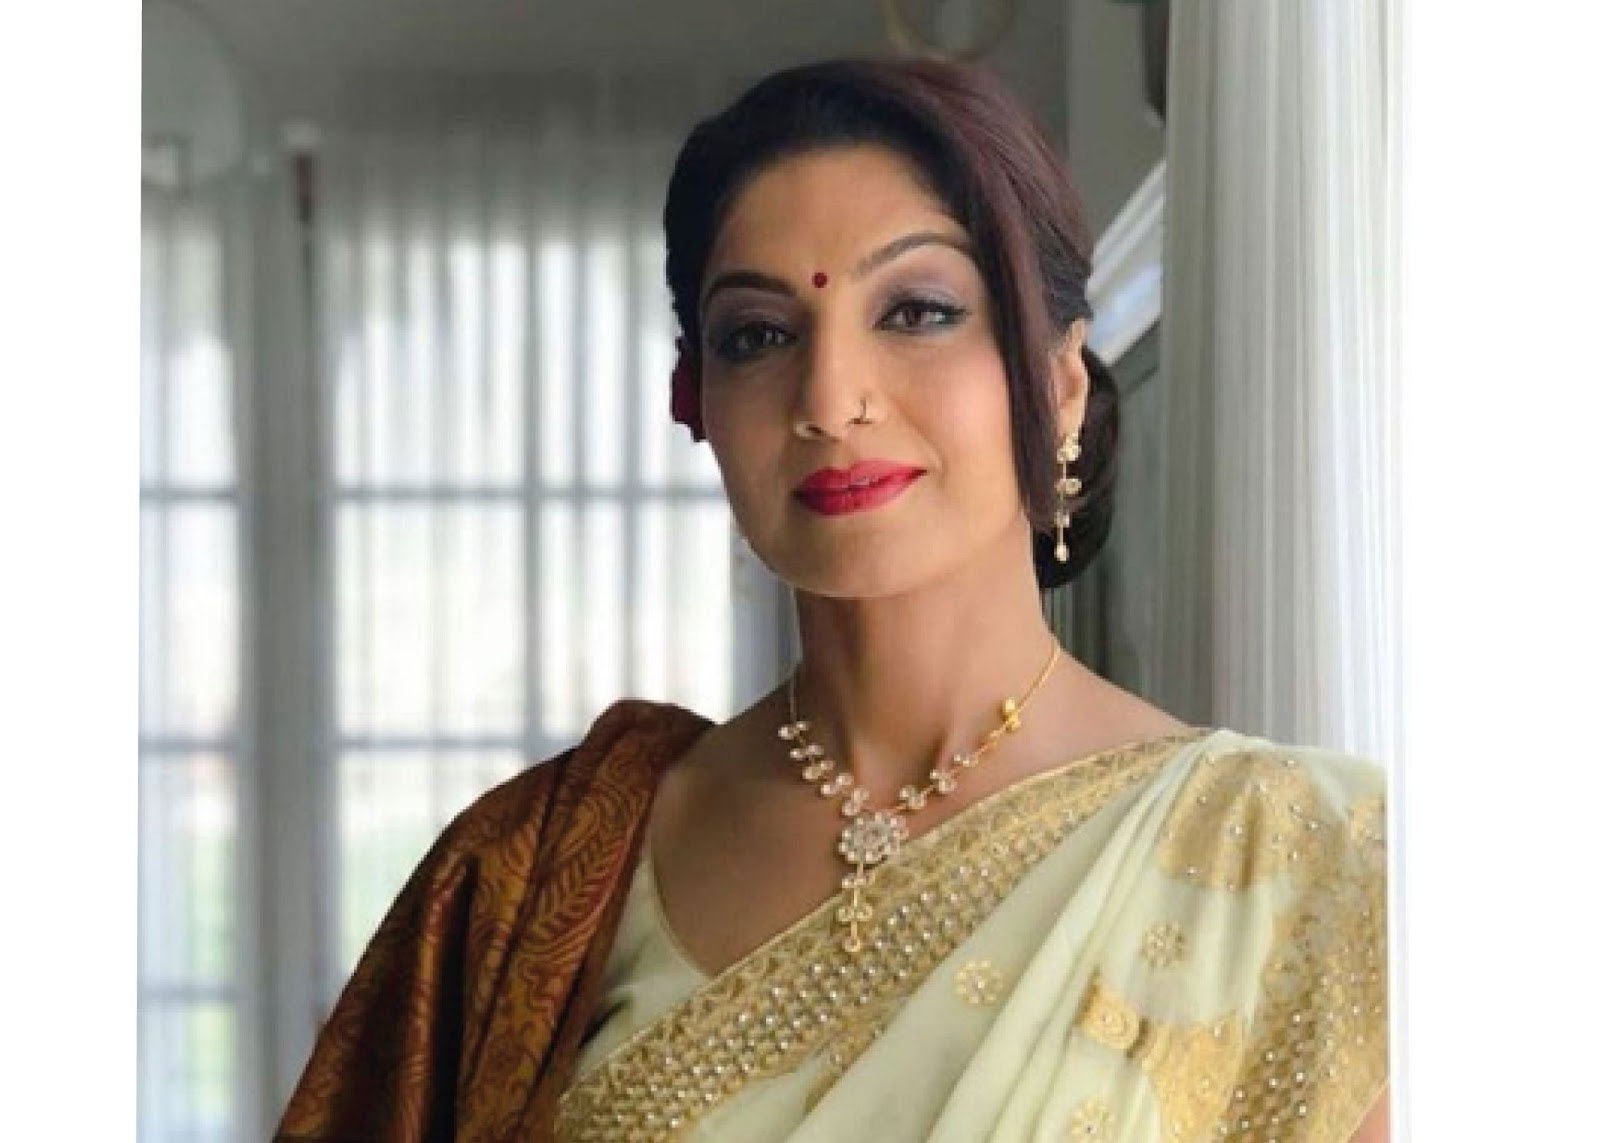 Aarti Nagpal Age,Biography,Family,Profile,Home and More - STAR-Celeb